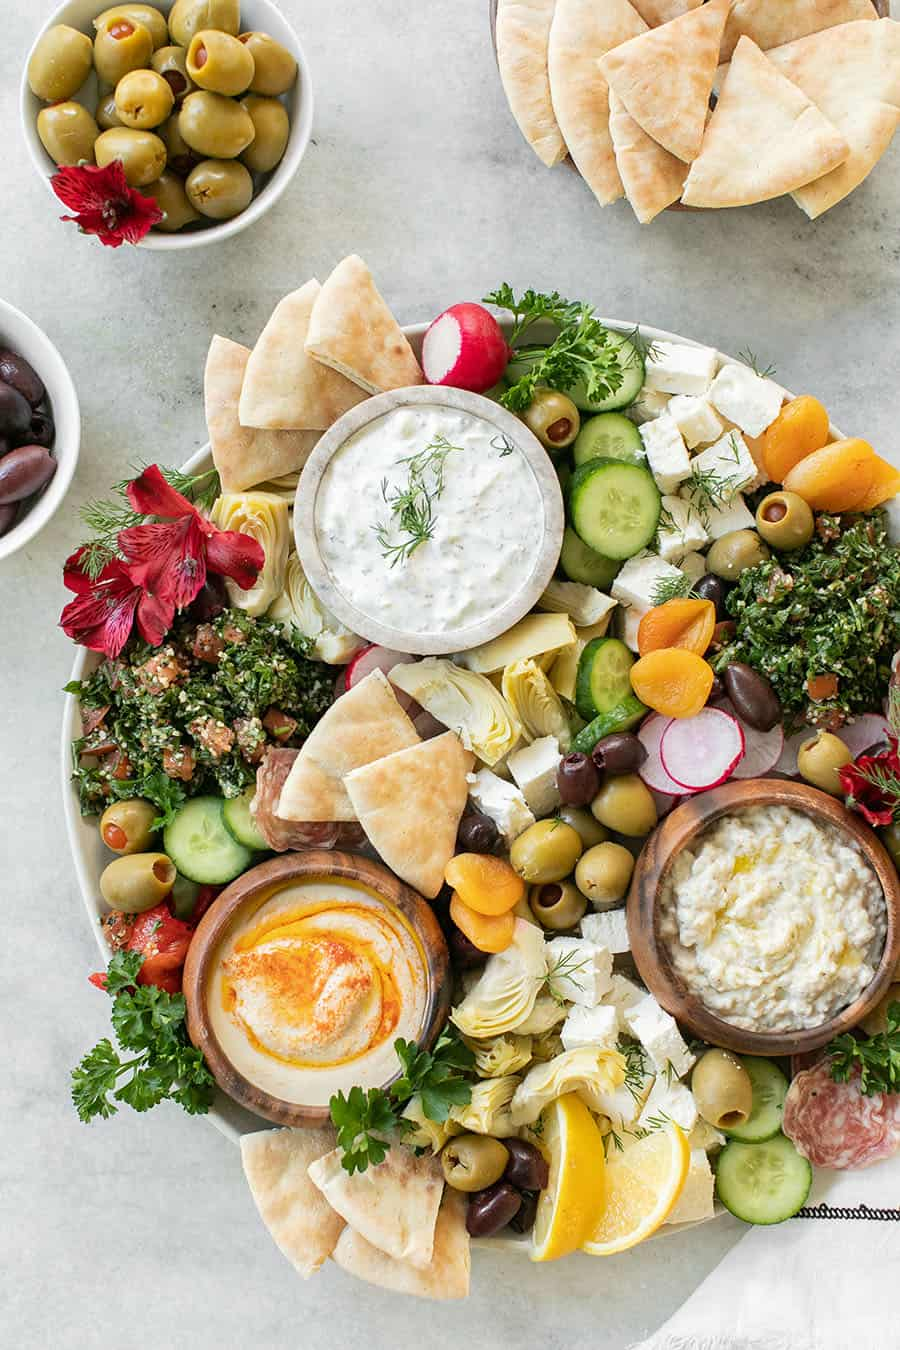 Easy Greek Mezze Platter on a marble table with dips, bread, olives and feta.